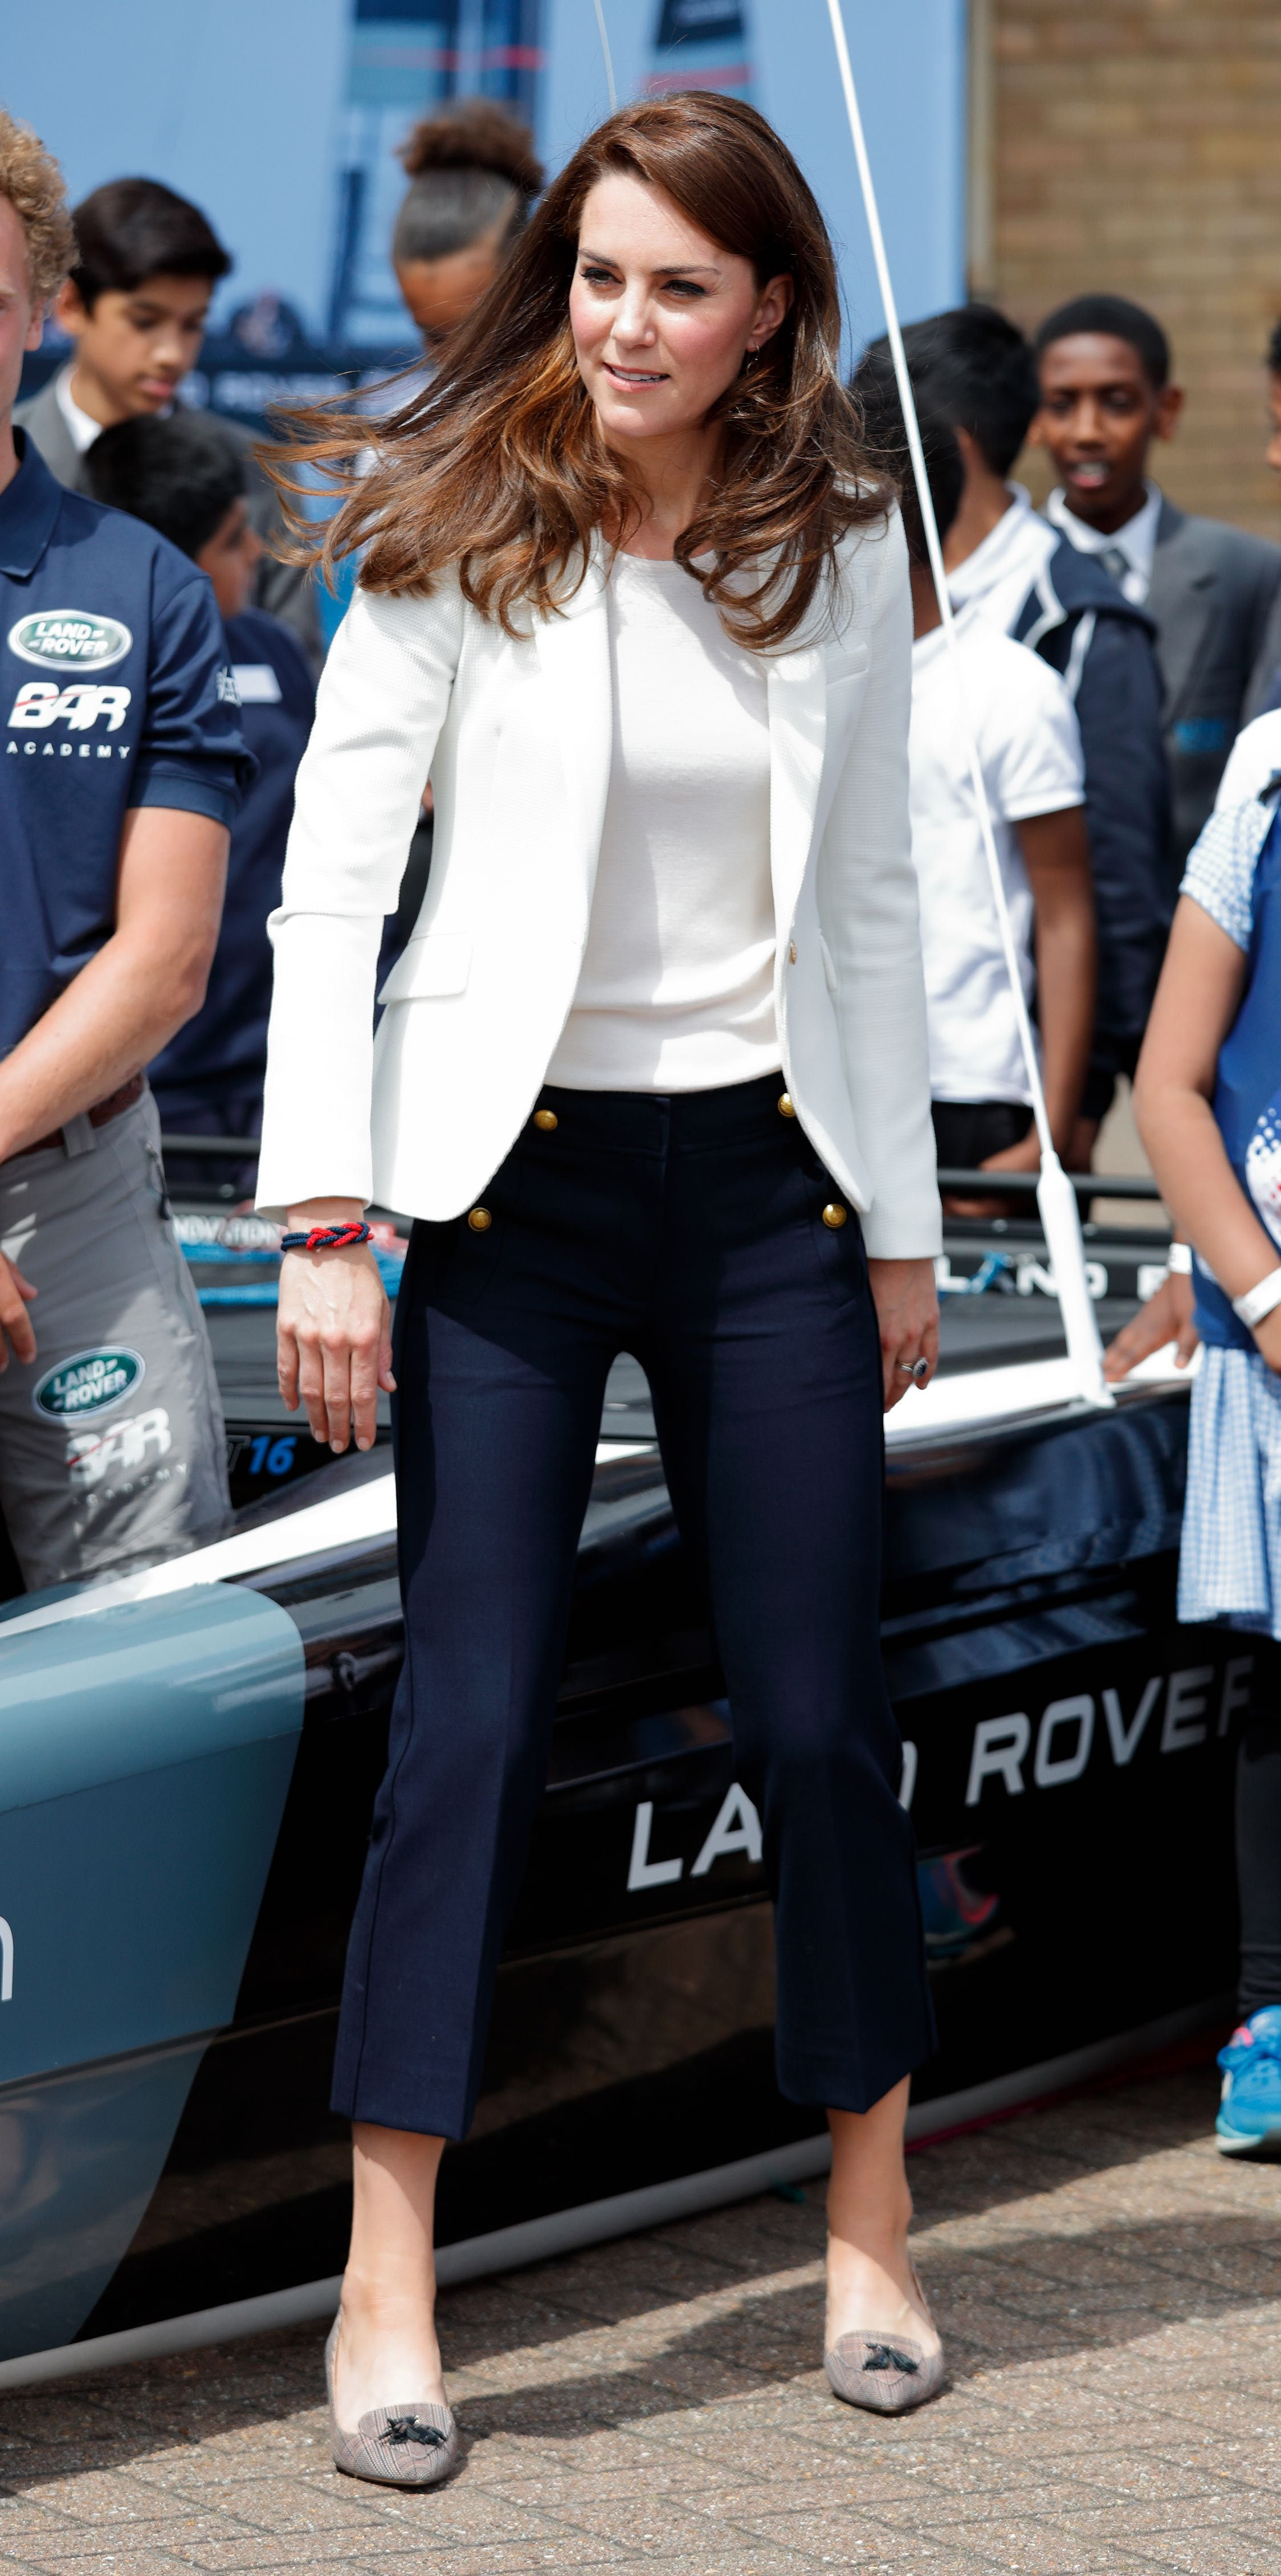 8f649c73ad Kate Middleton Jeans and Pants Outfits - Kate Middleton's Casual Outfits  and Style